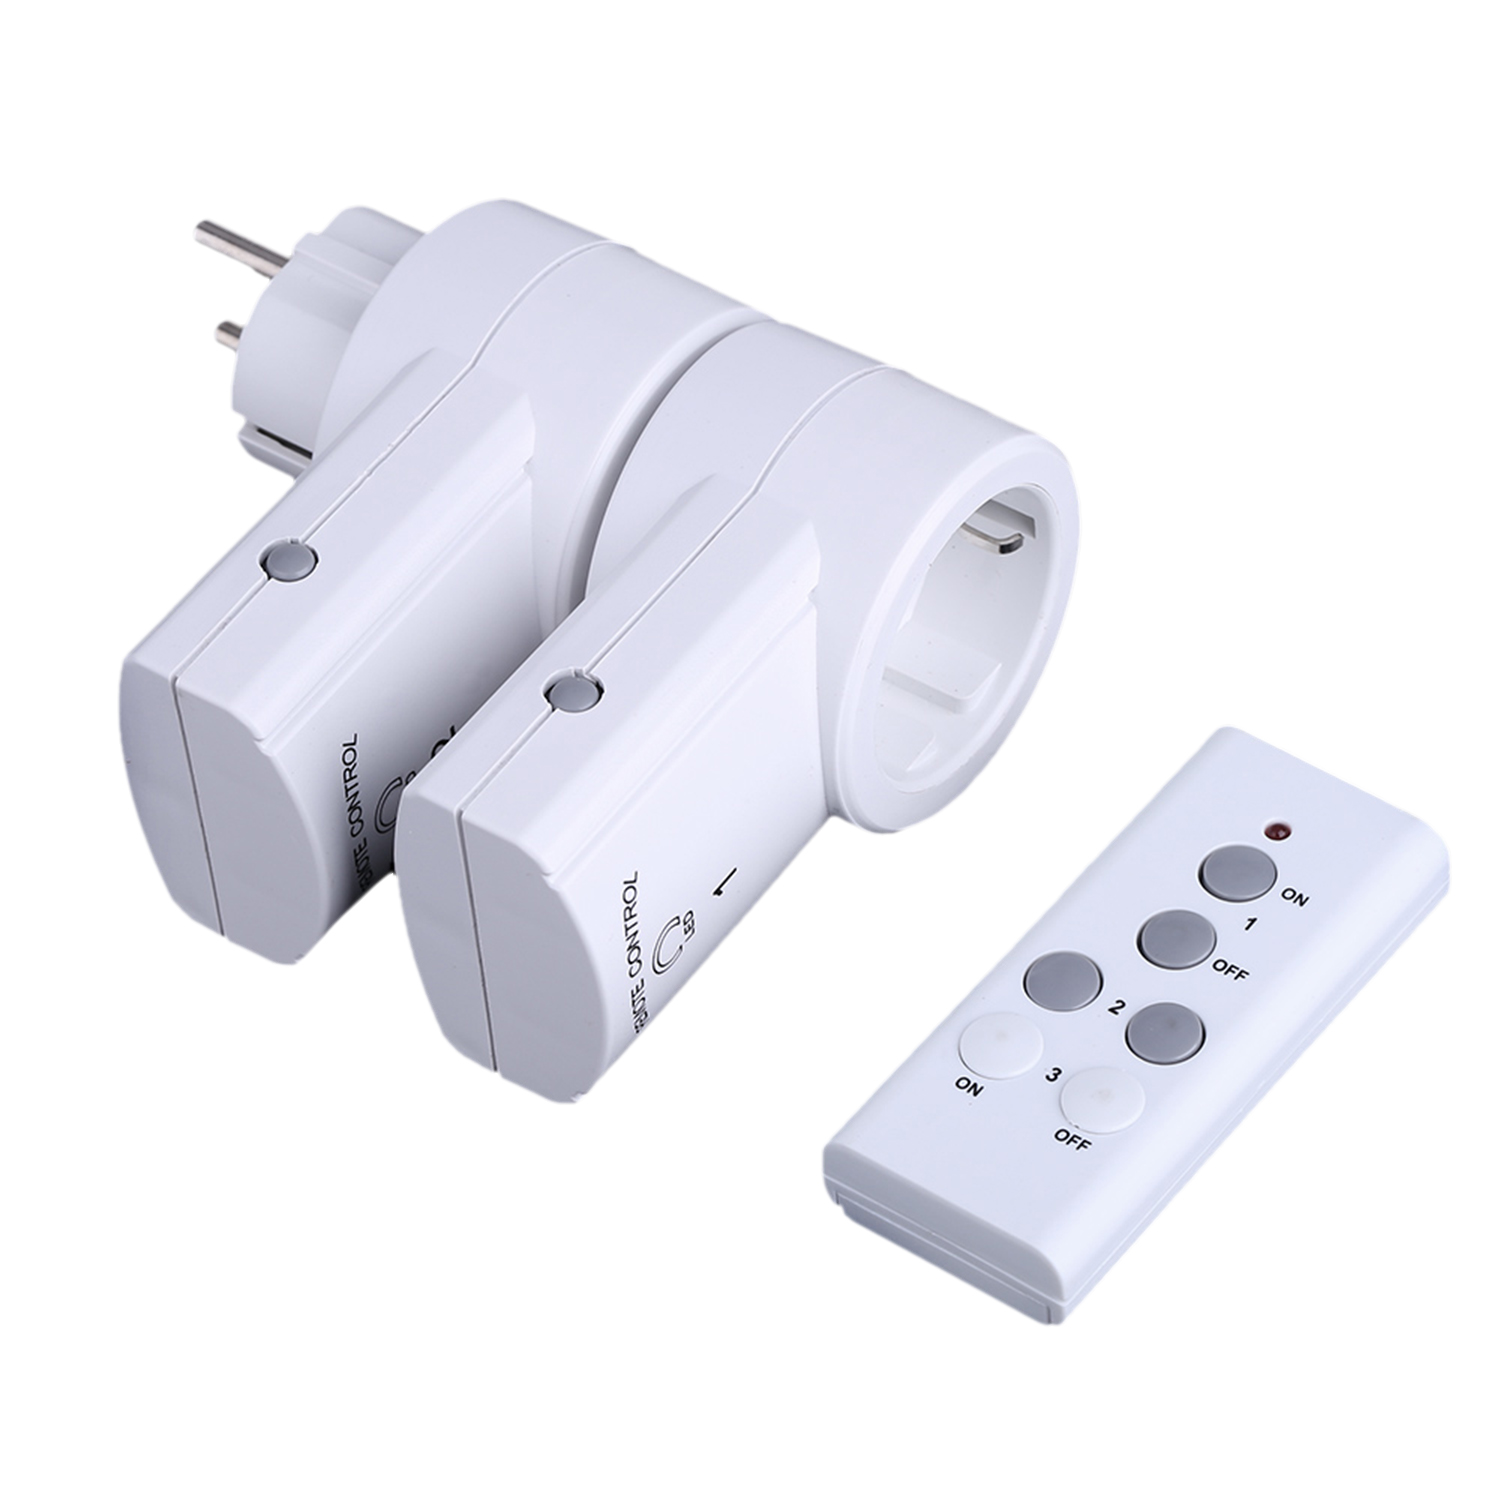 2-Pack Wireless Remote Control Switch Power RF Socket Outlet for Household Smart